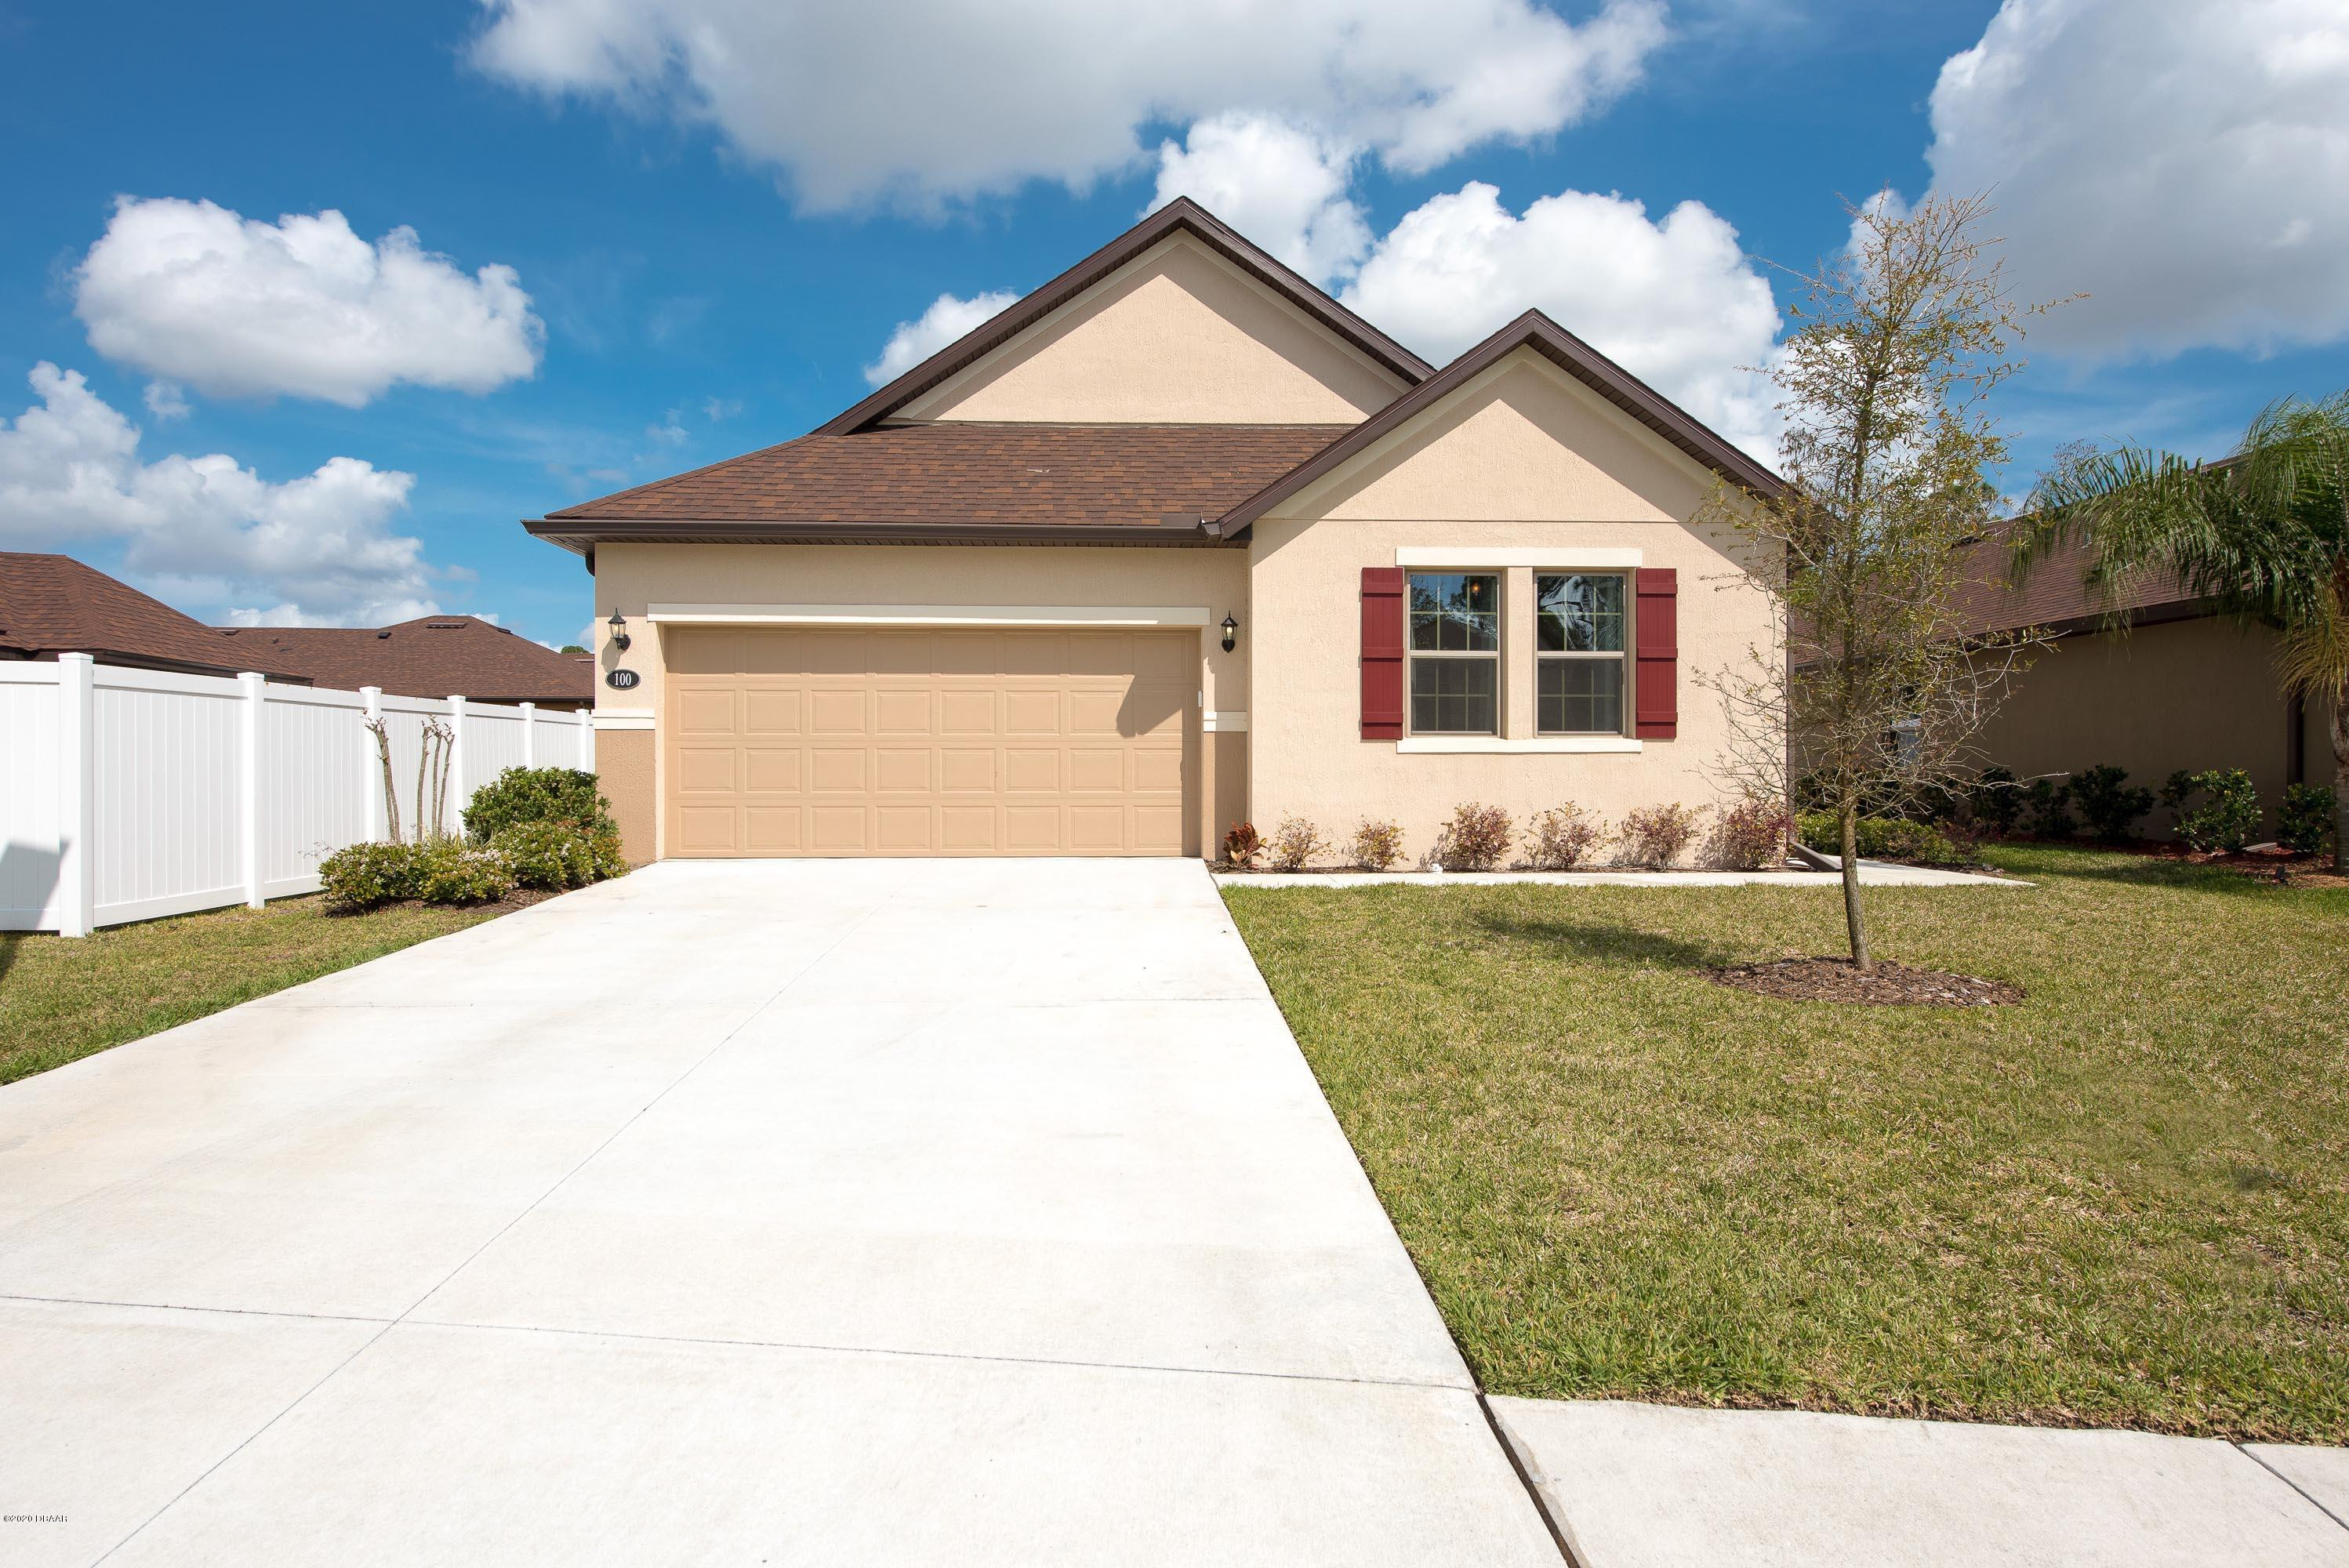 100 San Mardeen Ct, one of homes for sale in Holly Hill